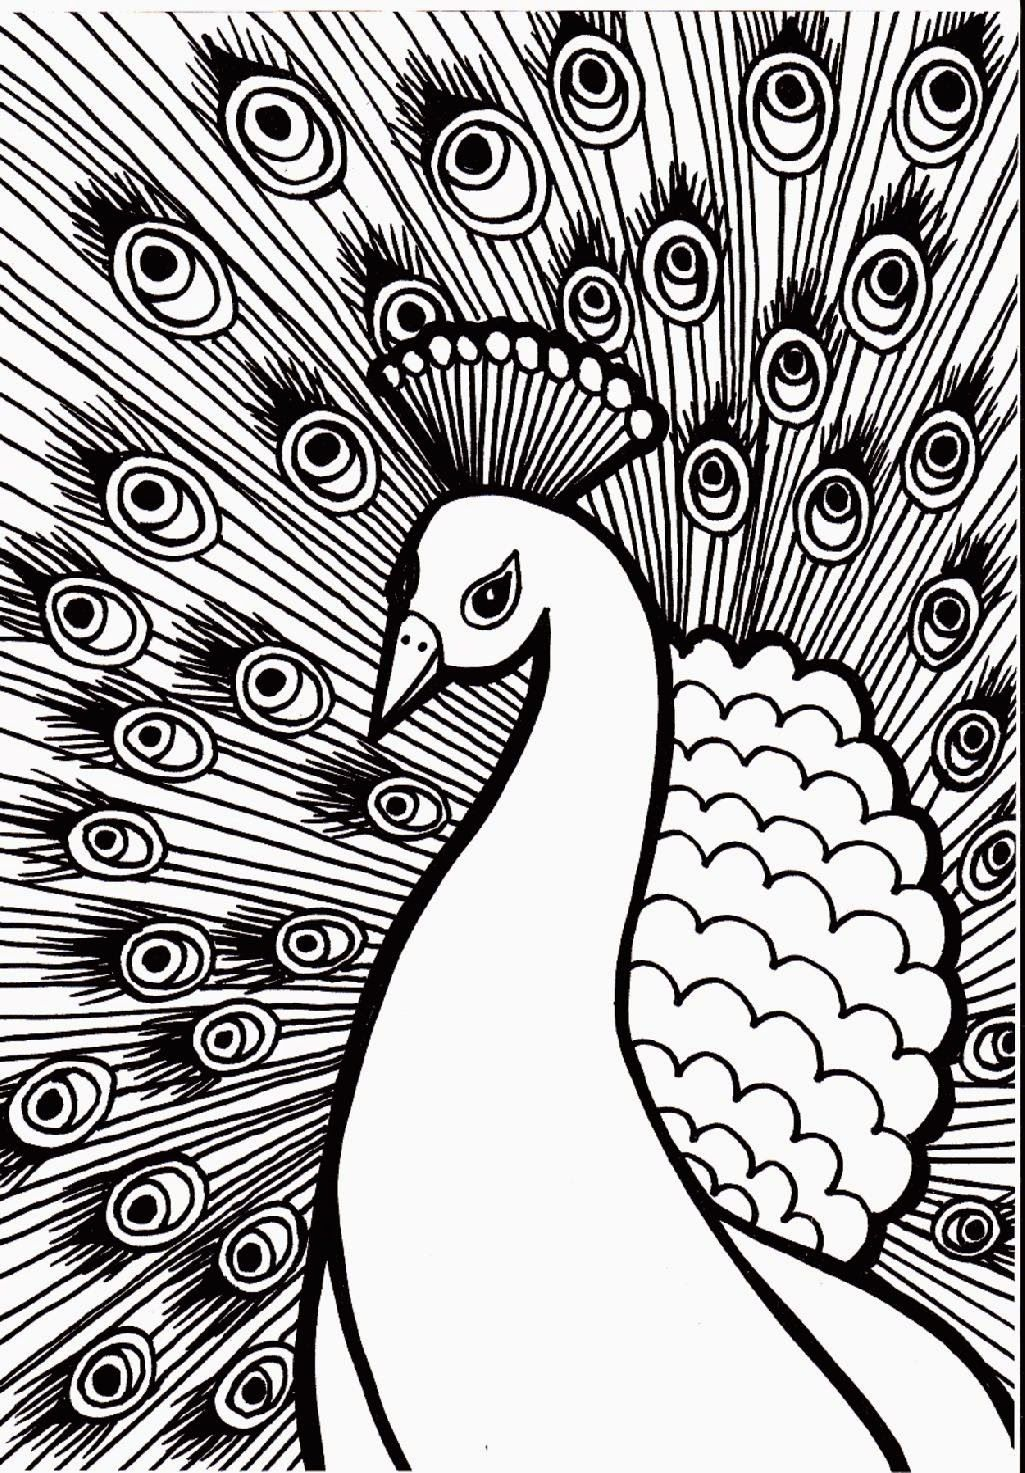 Therapeutic coloring pages for adults - Colouring Pages For Adult Therapy